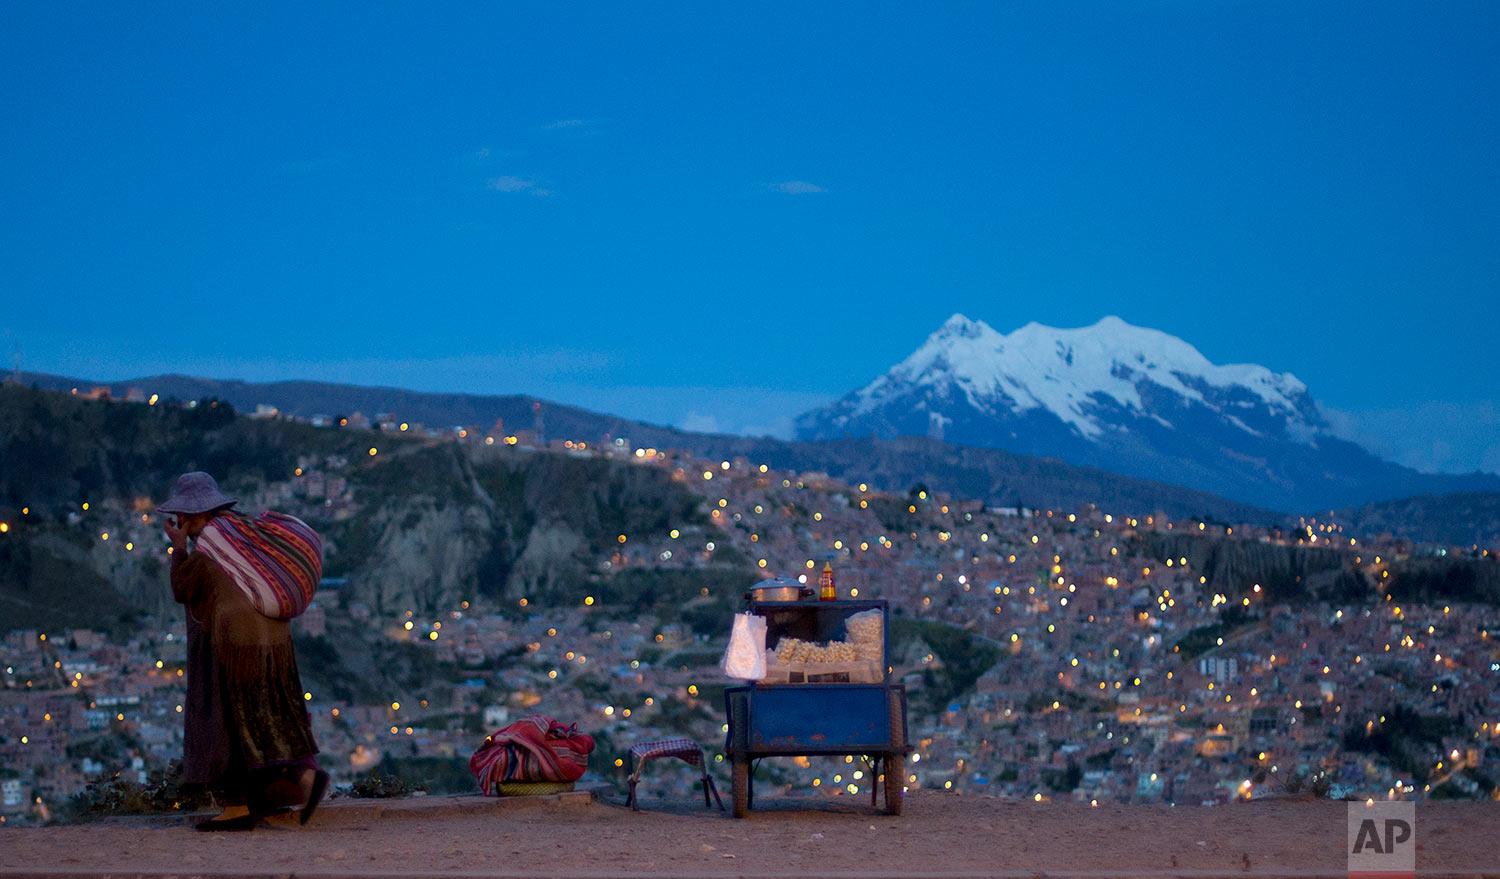 """A woman walks along Pereferica Avenue, past a street stall of popcorn, known as """"pipocas,"""" backdropped by the snow-capped Illimani Mountain, at sunset in La Paz, Bolivia, Tuesday, April 24, 2018. Illimani is part of the Cordillera Real in the Andes of South America. (AP Photo/Juan Karita)"""